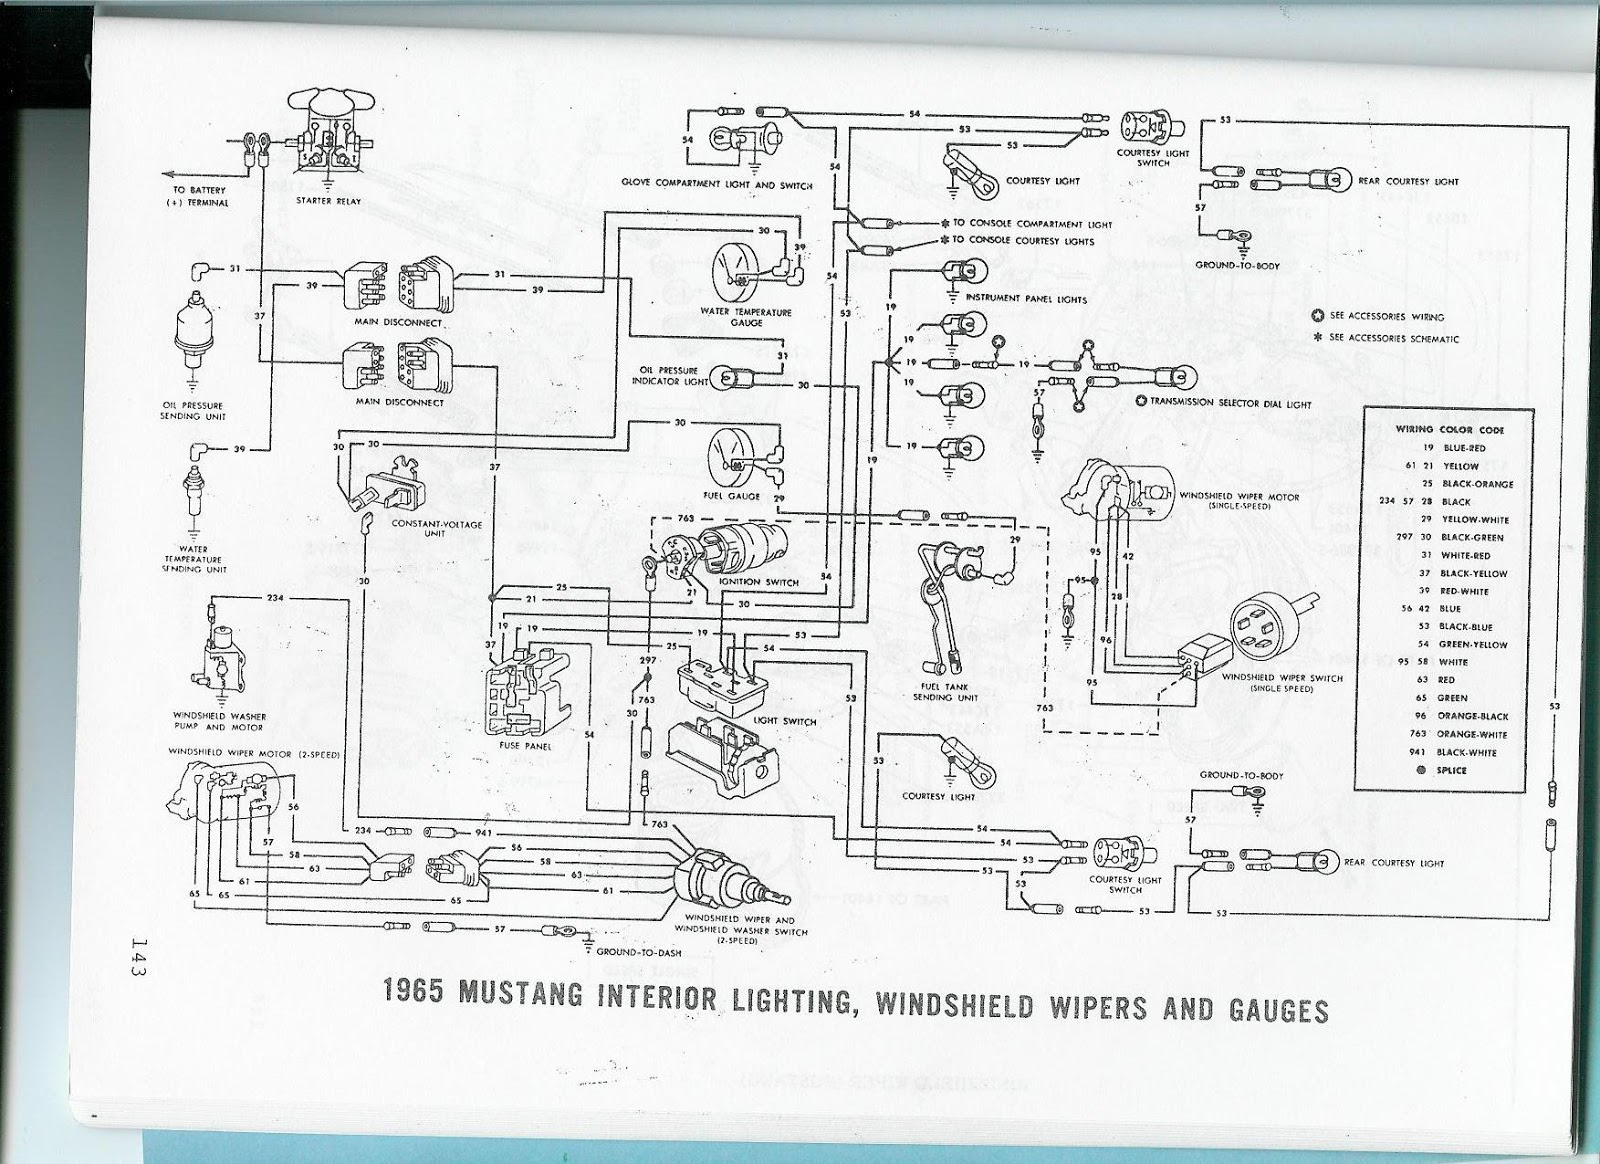 65+interior+lighting+and+gauges the care and feeding of ponies 1965 mustang wiring diagrams 66 mustang wiring diagram at nearapp.co